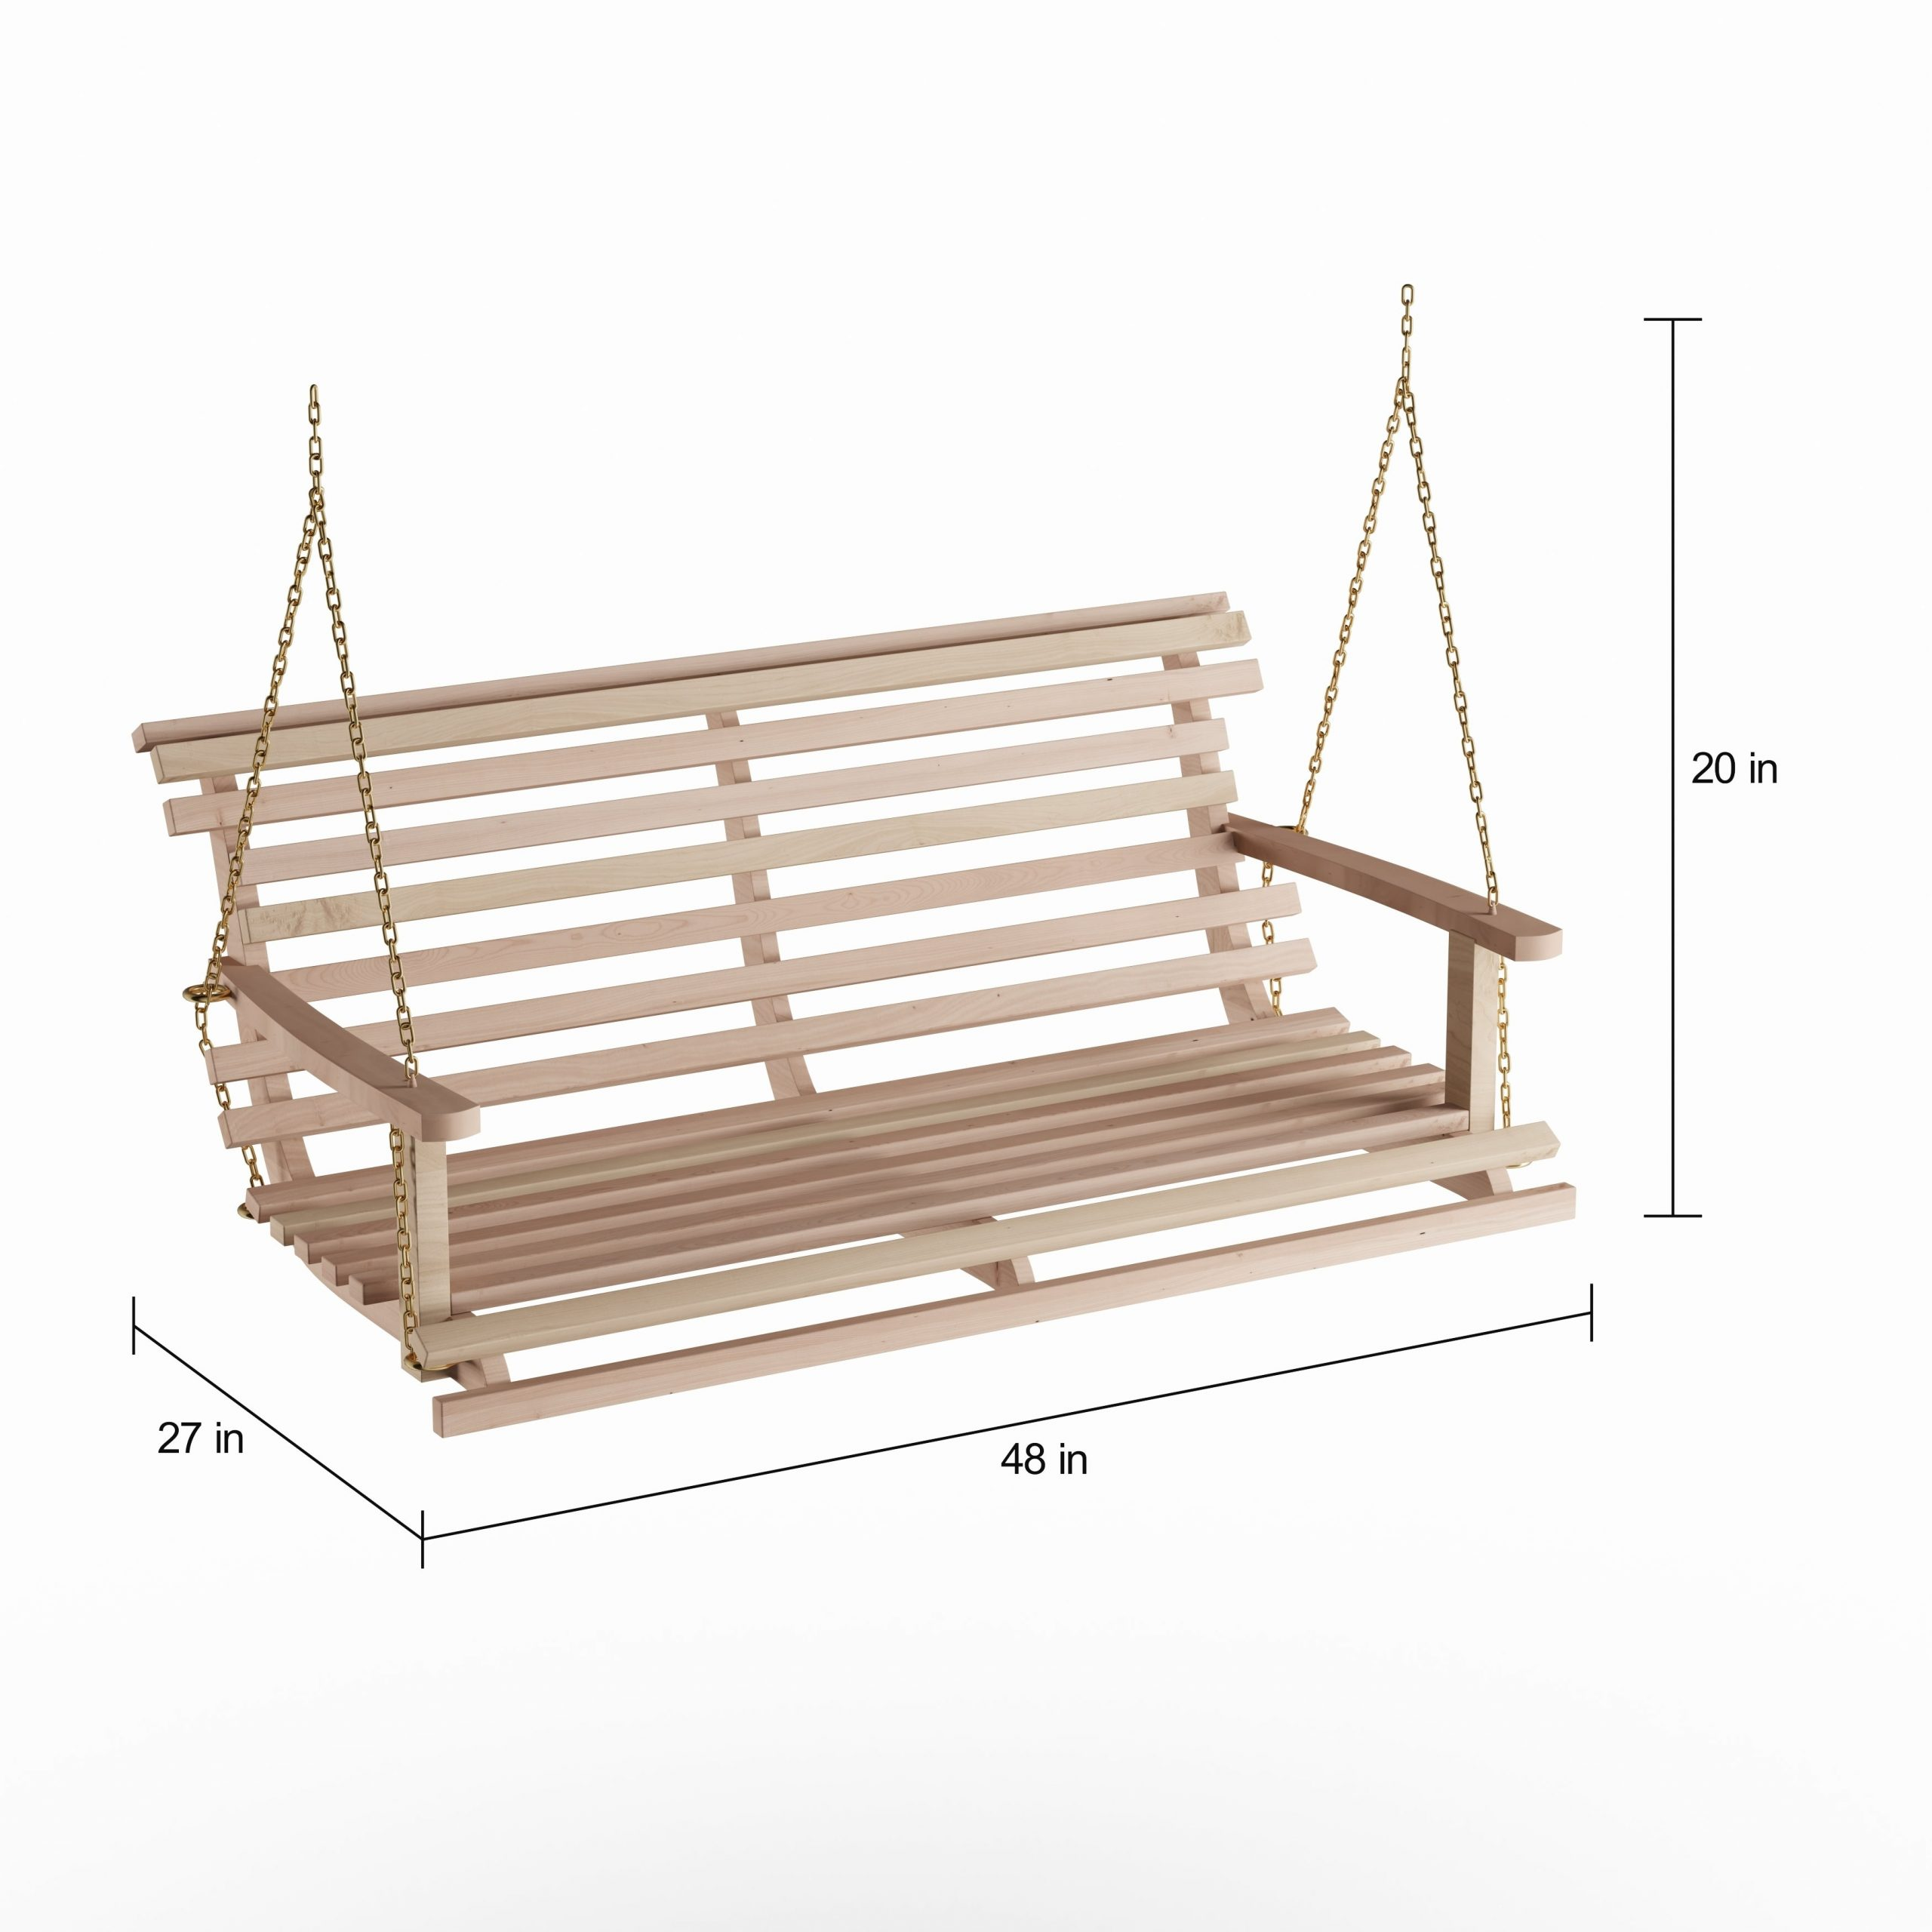 Havenside Home Goodwin Acasia Wood Bench Swing With Chain For Porch Swings With Chain (View 3 of 25)